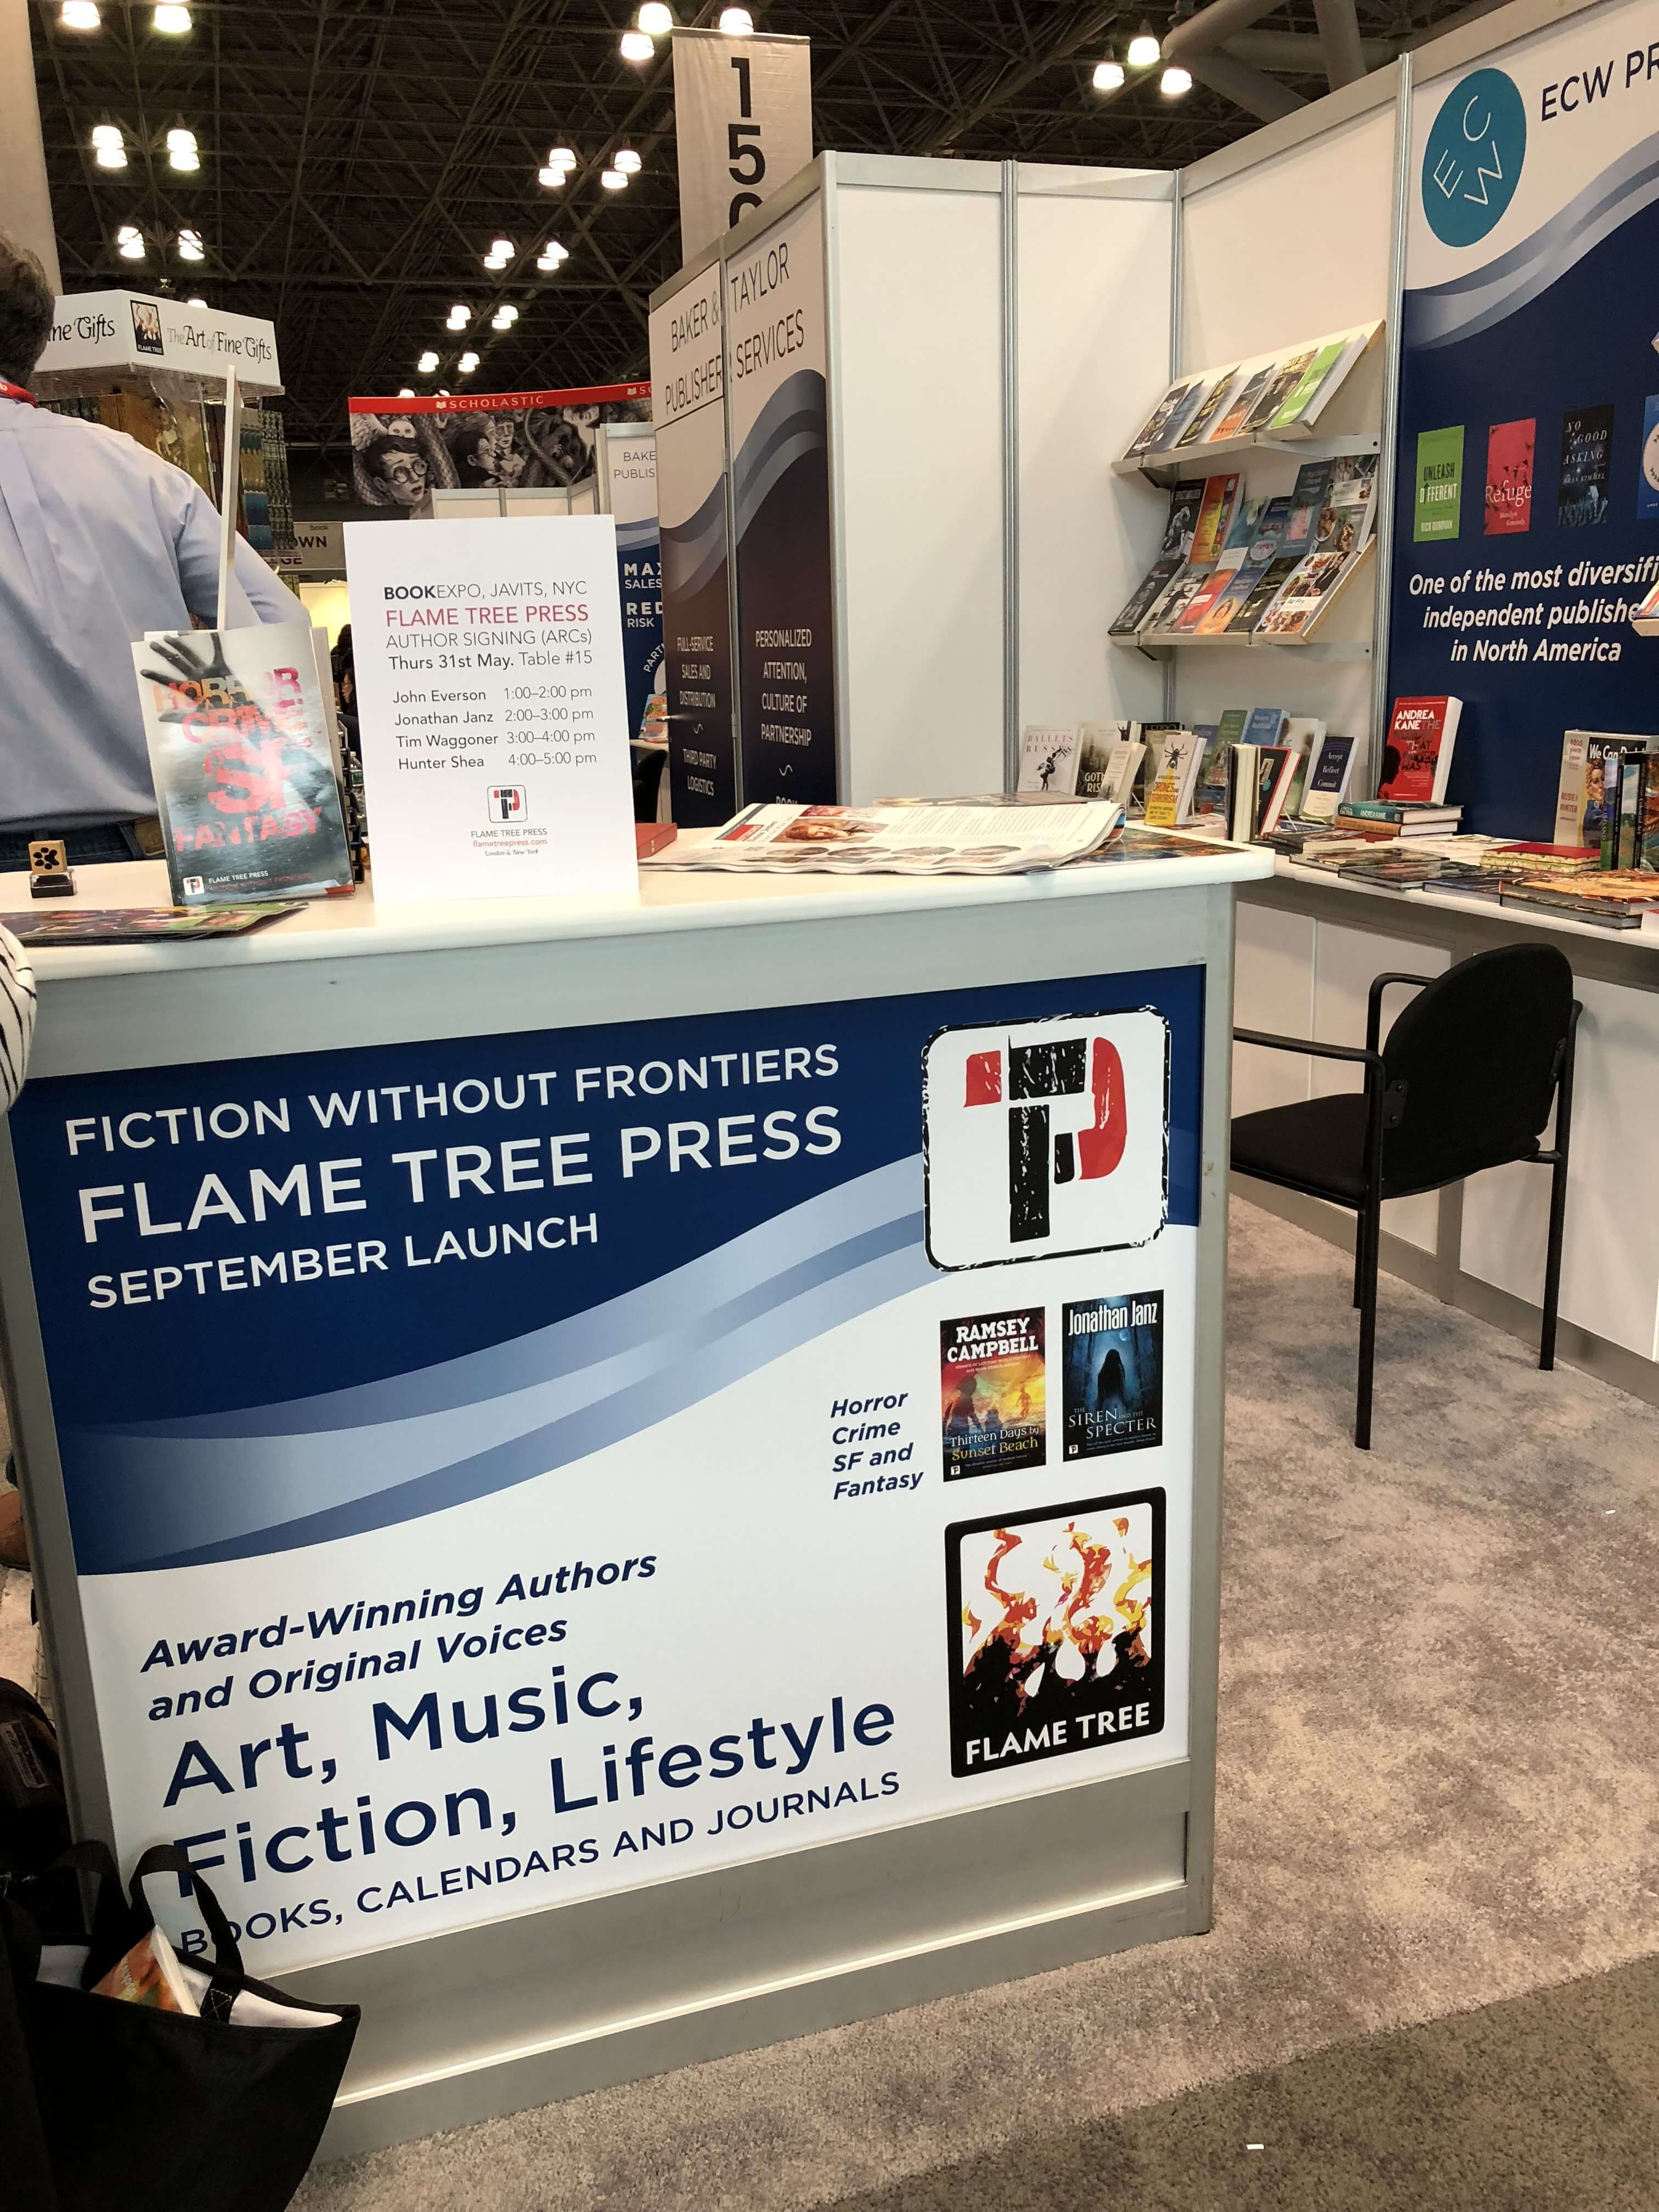 BookExpo18 Flame Tree Press Booth